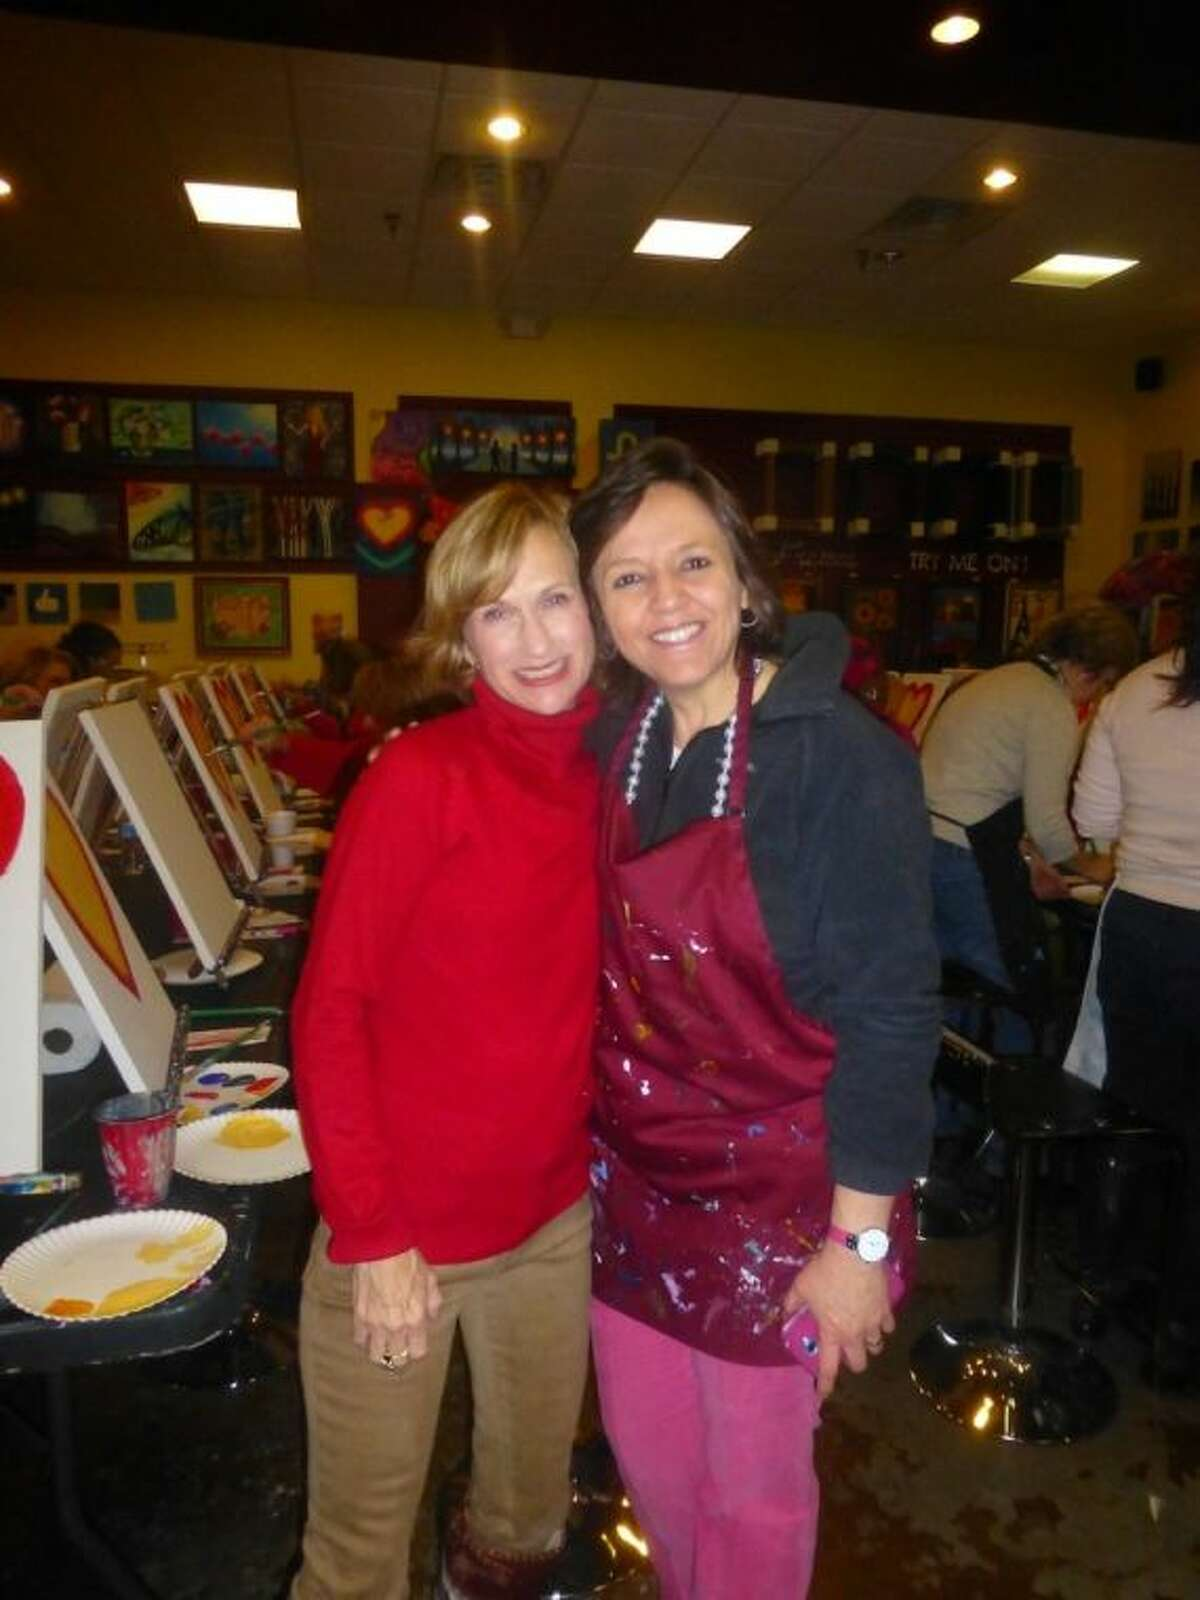 Laurie Hughes, (left) advanced practice nurse at the MD Anderson Regional Care Center in Sugar Land, welcomes friend and breast cancer survivor Myriam Saenz-Chavez to the February Breast Friends meeting held at Pinot's Palette in Sugar Land Town Square.